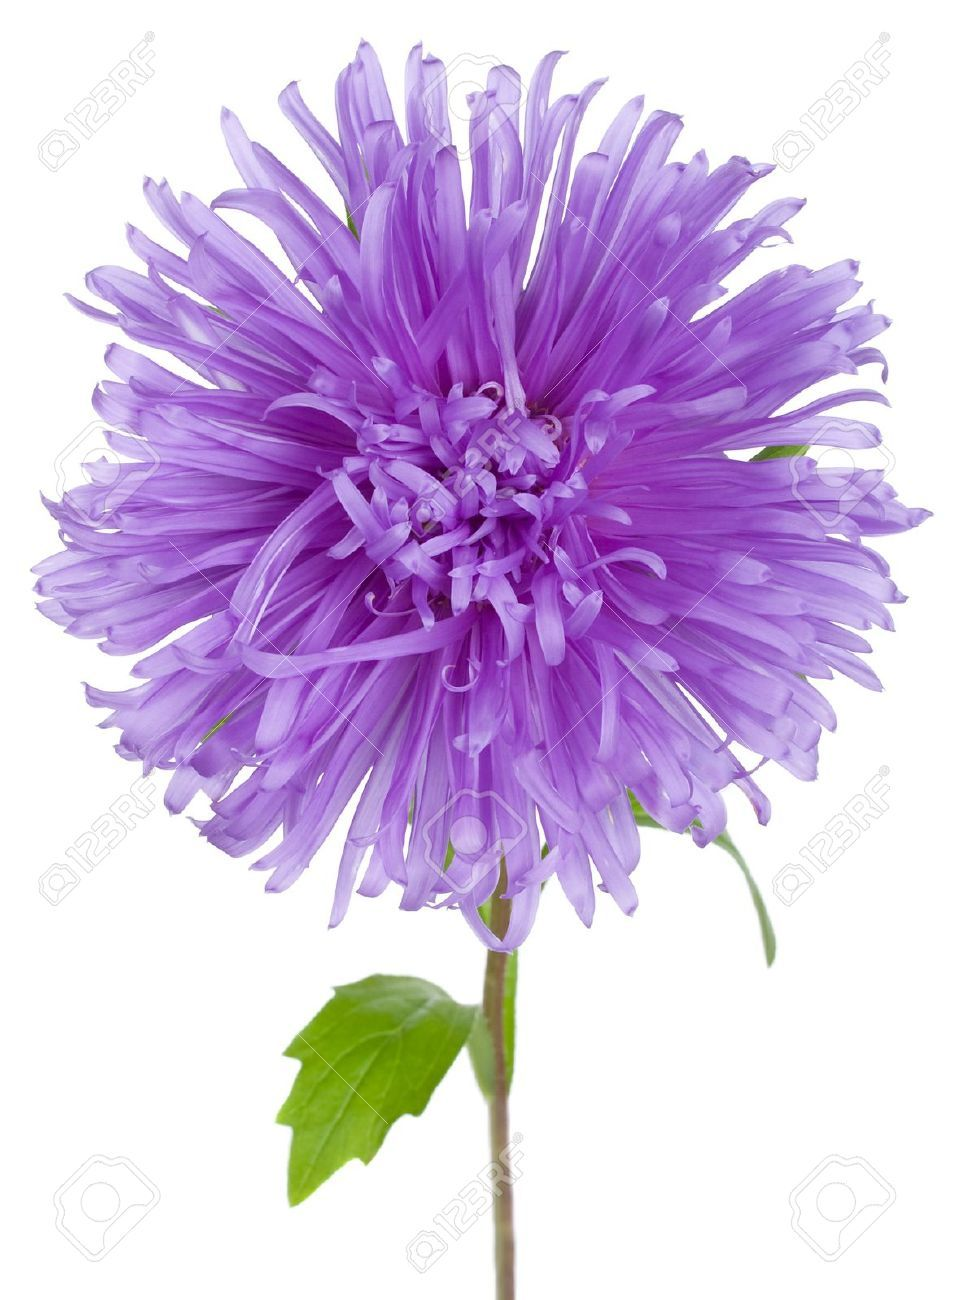 aster Google Search (With images) Aster flower, Aster